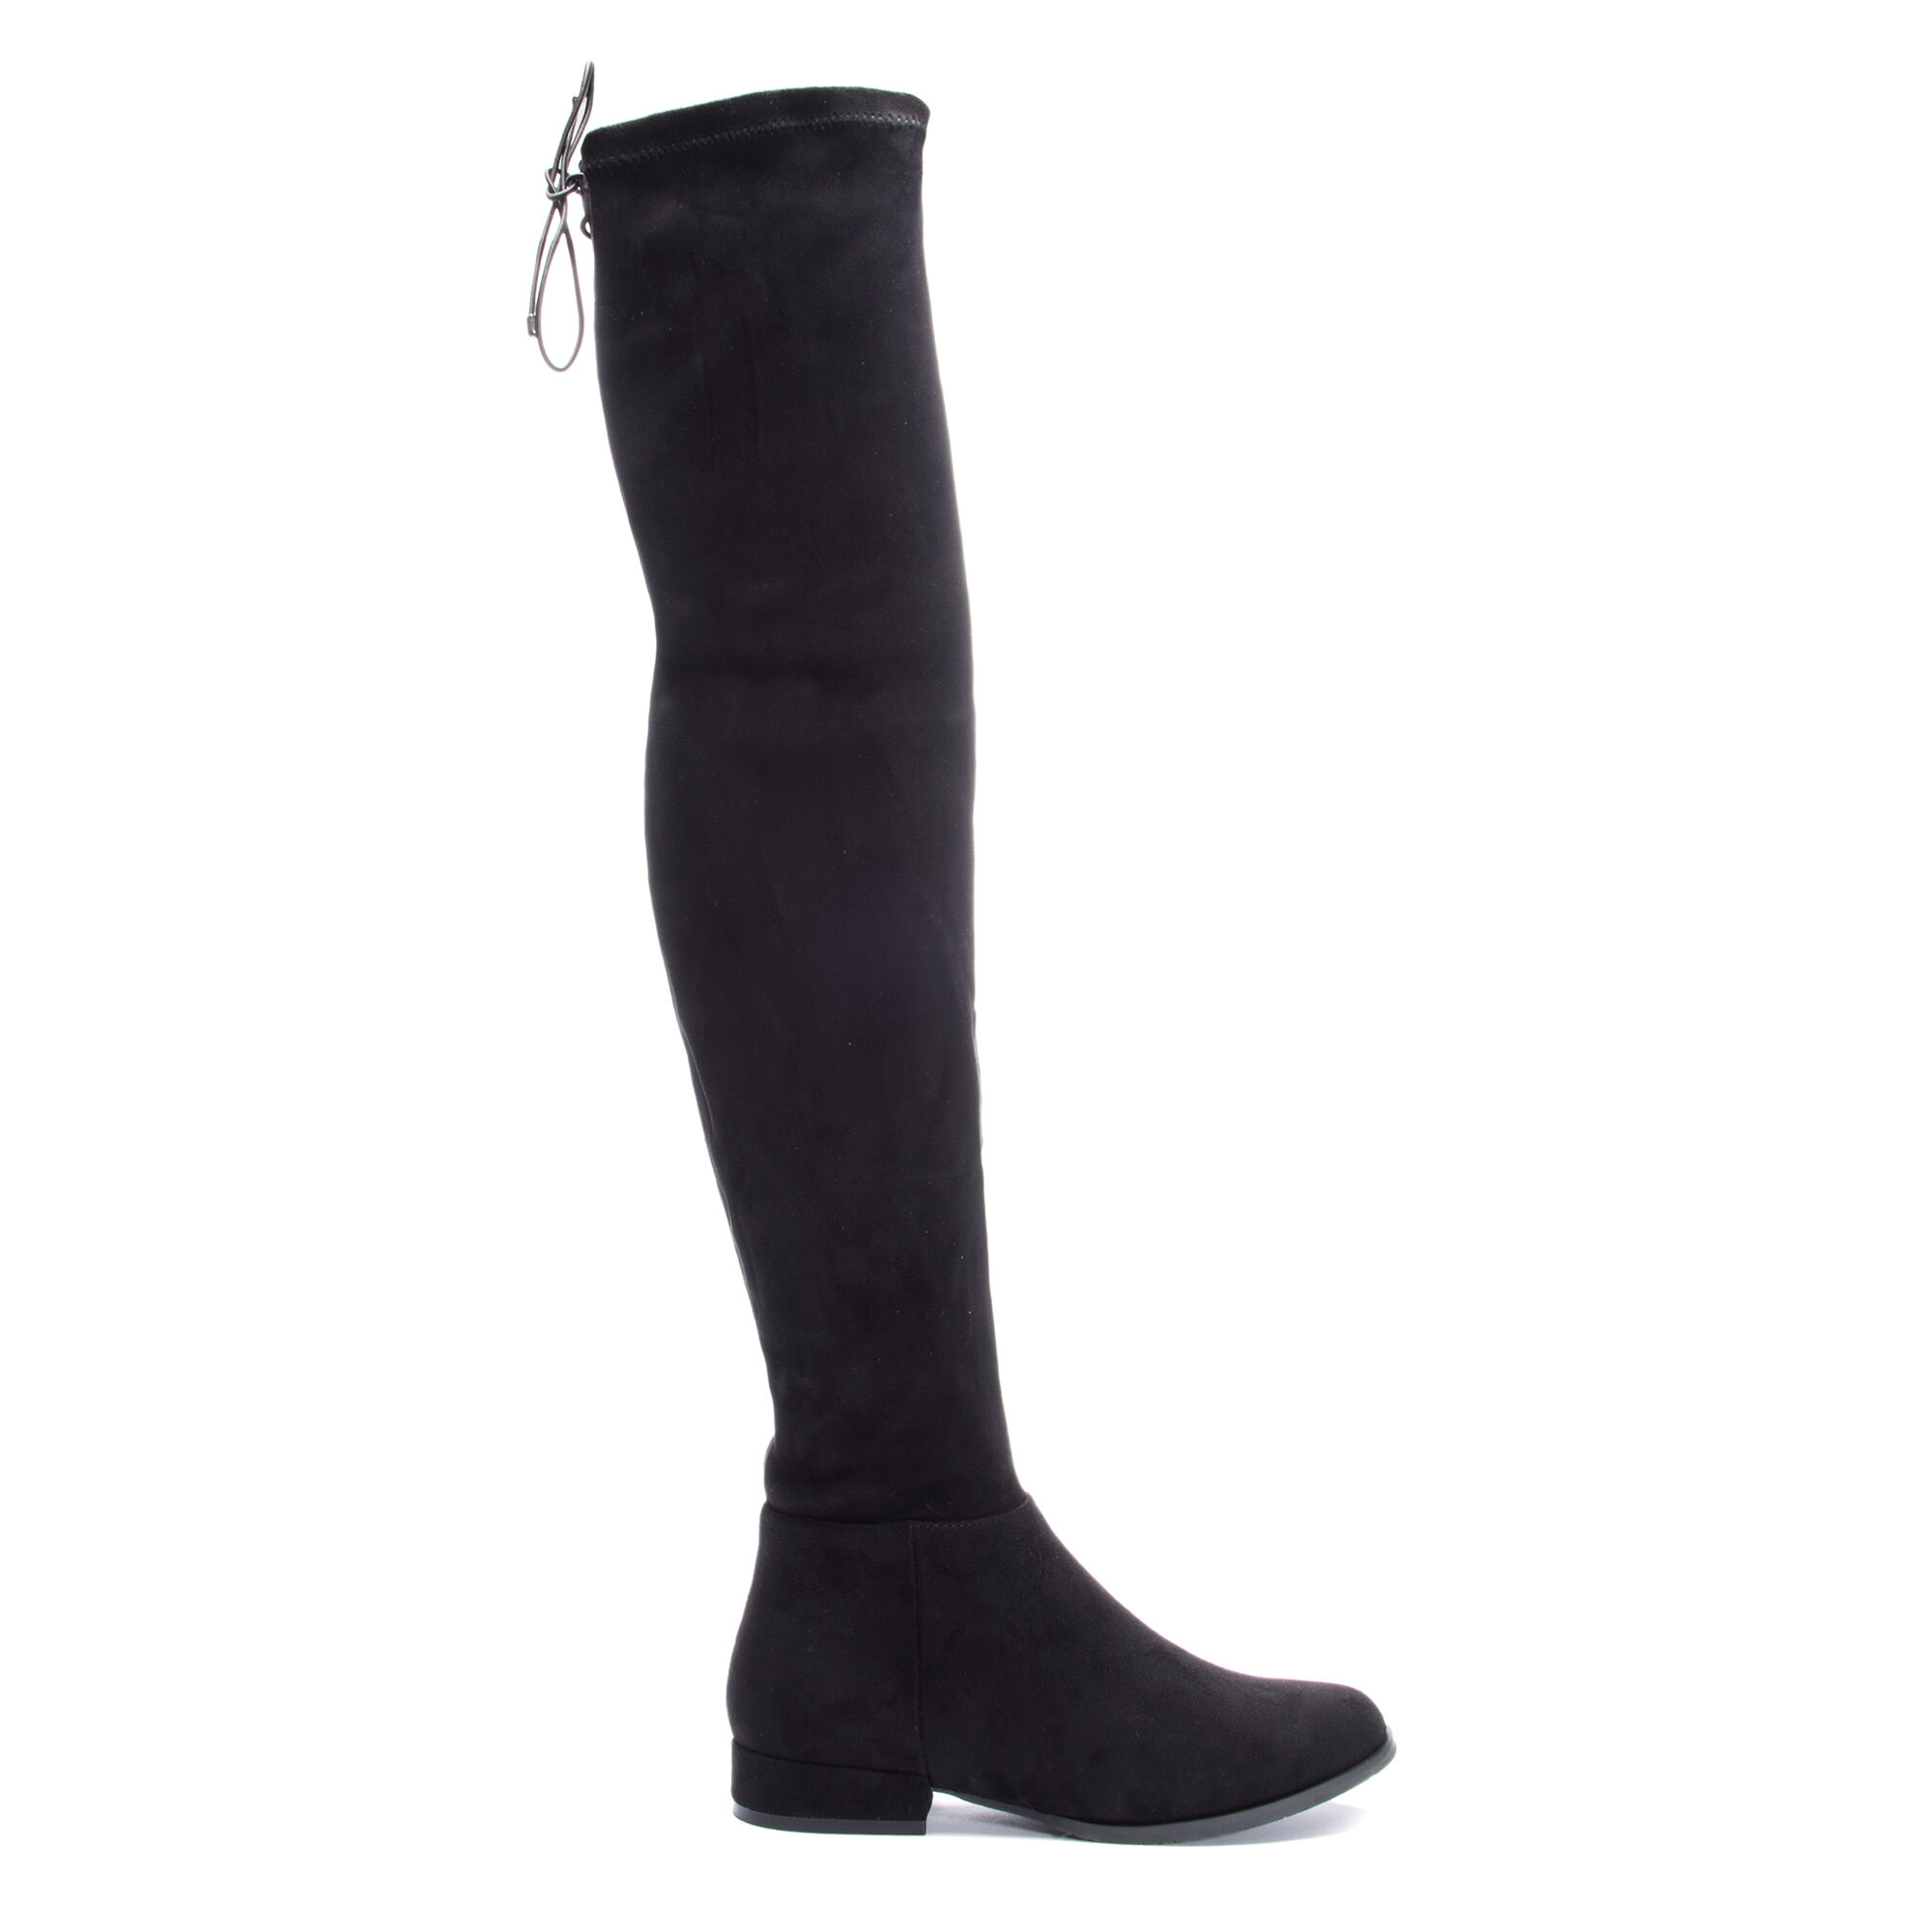 ad6df3747e52d Richie Over the Knee Suede Boot | Chinese Laundry